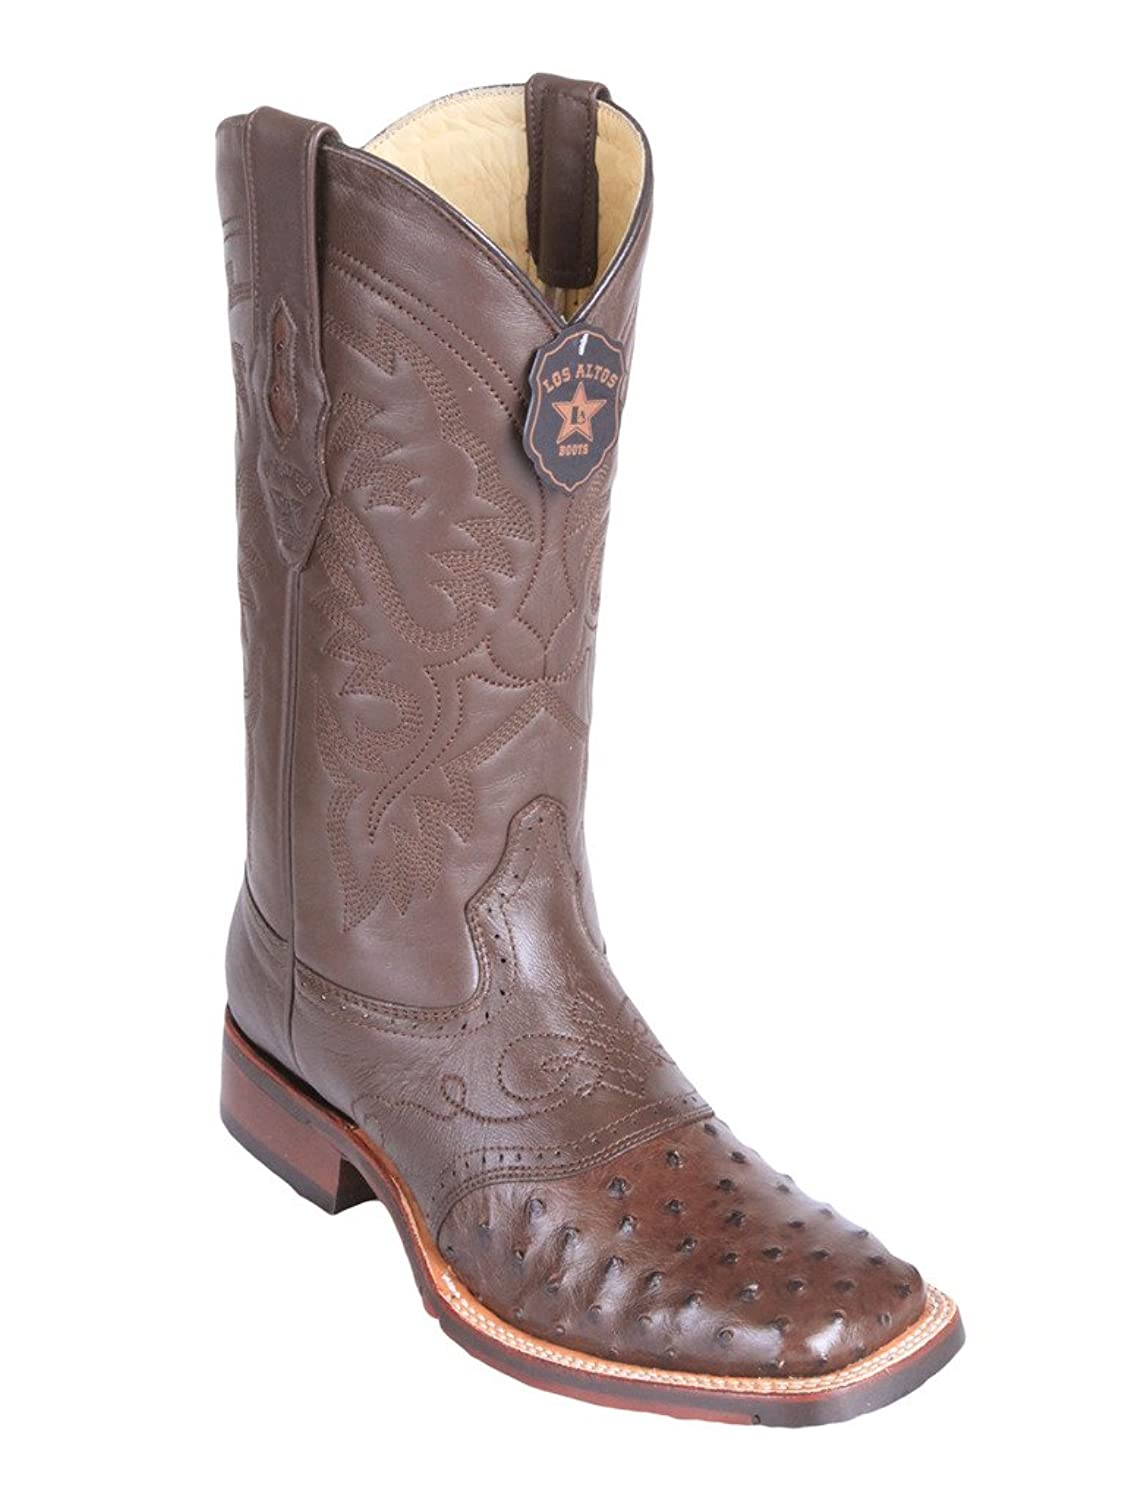 Men's Wide Square Toe with Saddle Genuine Leather Ostrich Skin Western Boots